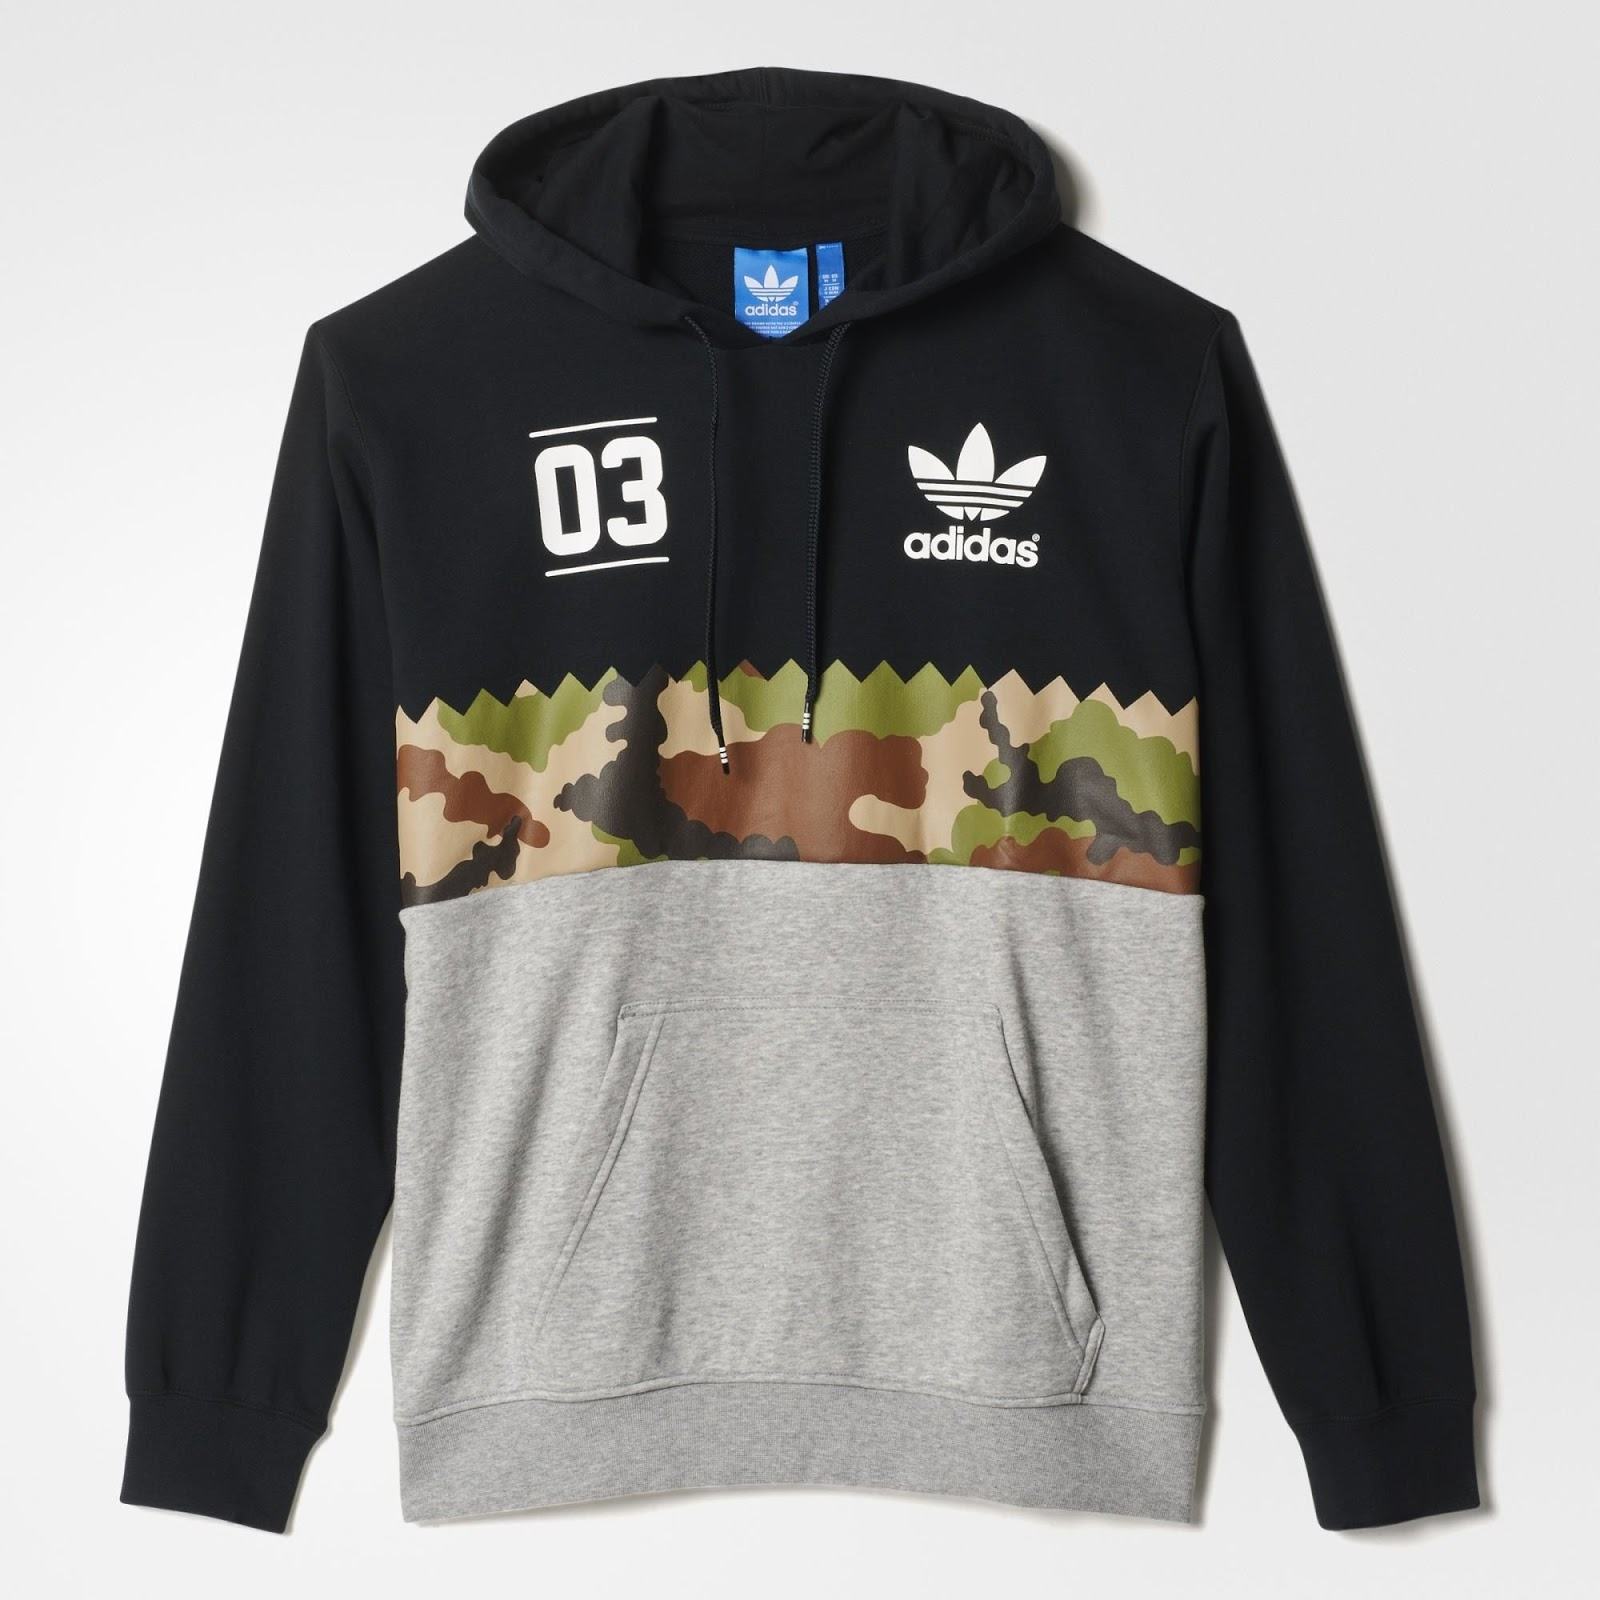 adidas originals 03 sweatshirt